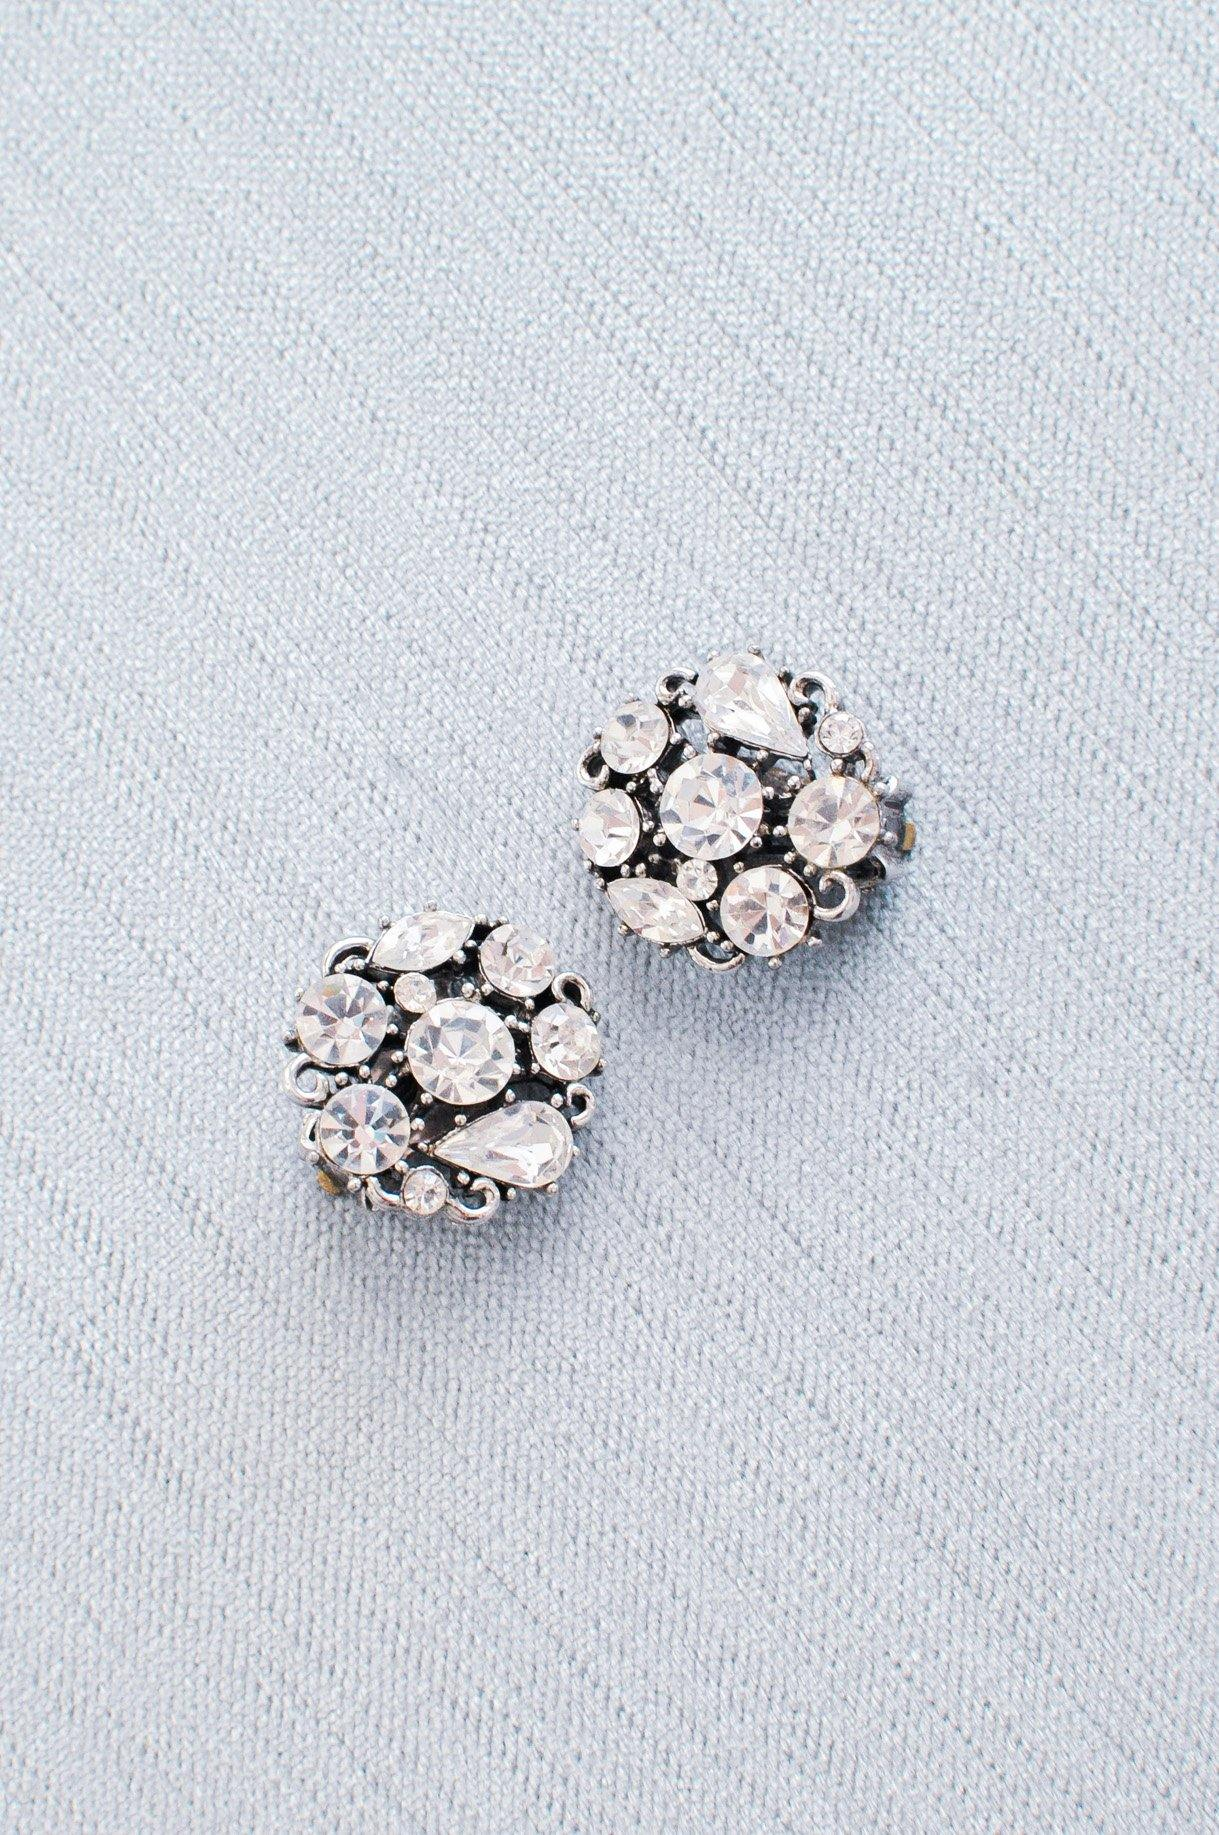 Vintage Lisner rhinestone cluster earrings from Sweet & Spark Wedding Collection.